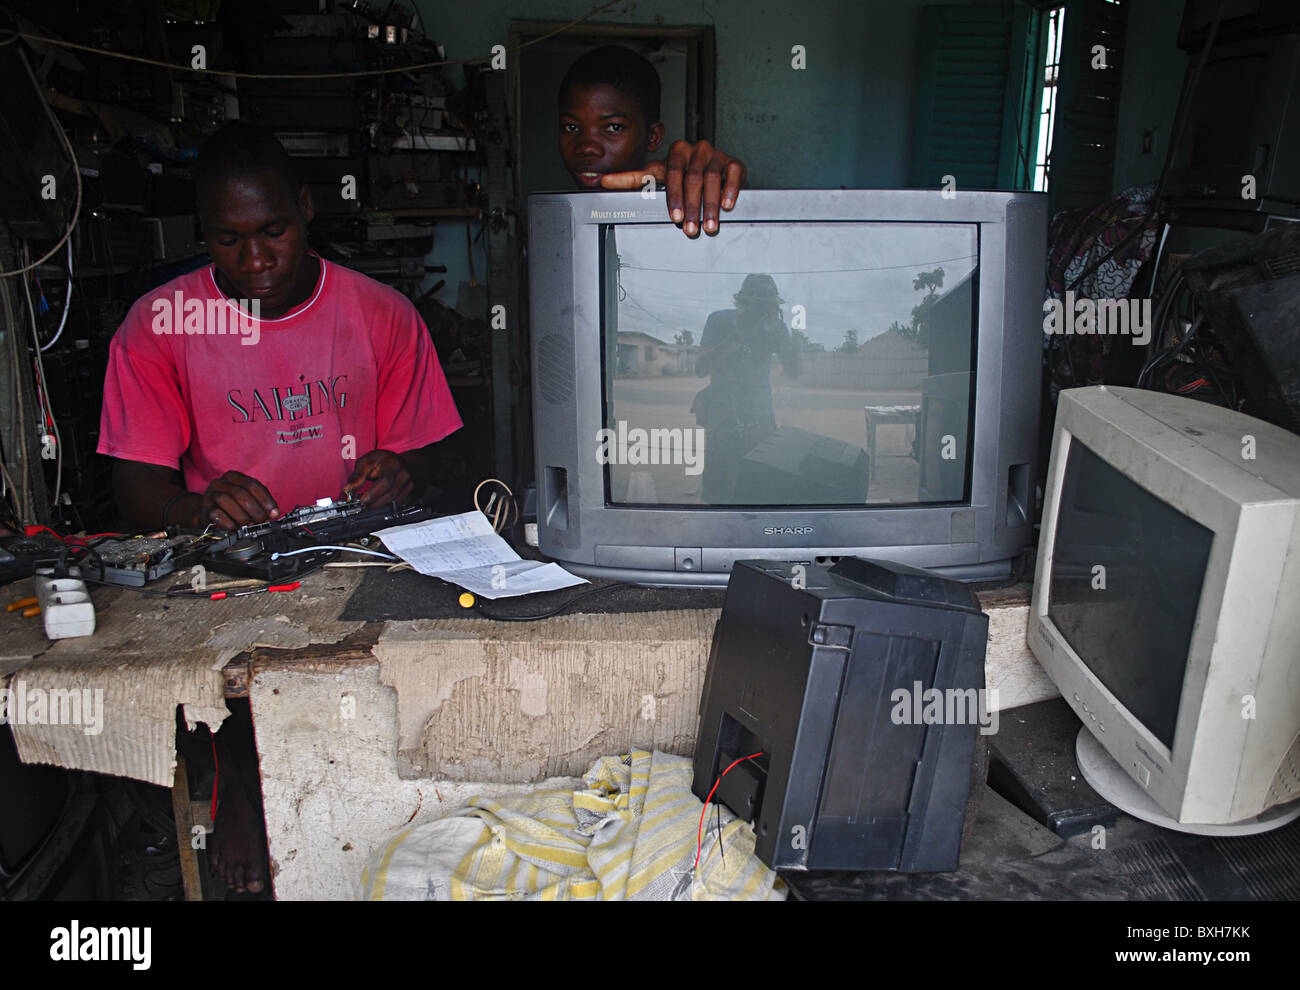 Man fixing second-hand computers in Ivory Coast, West Africa